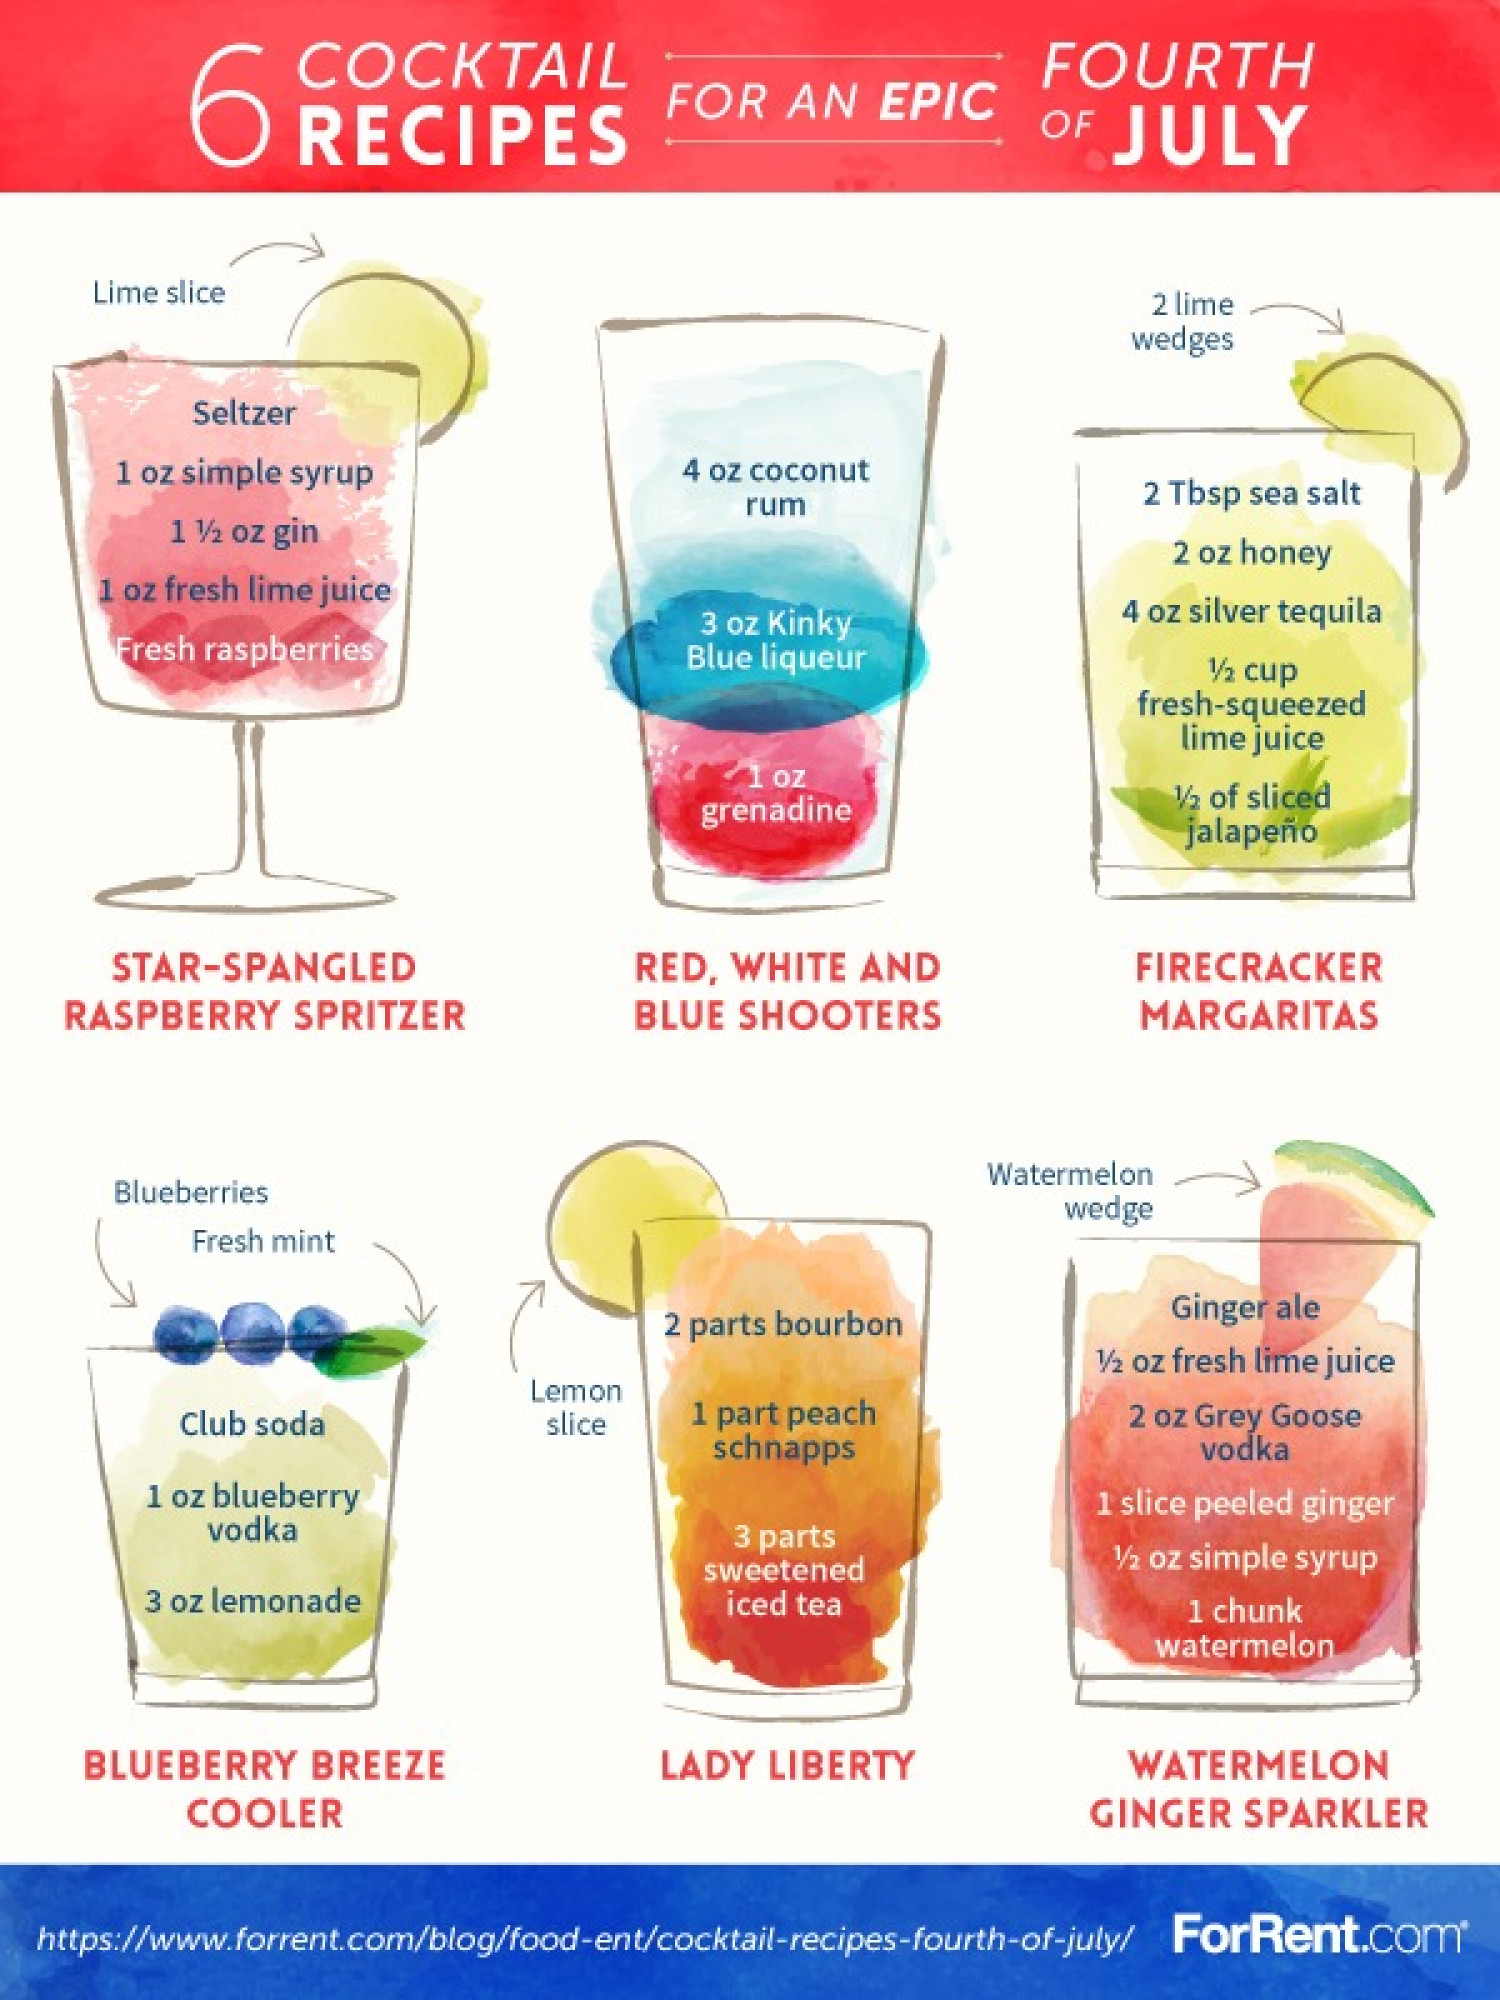 6 Cocktail Recipes for an Epic Fourth of July Infographic